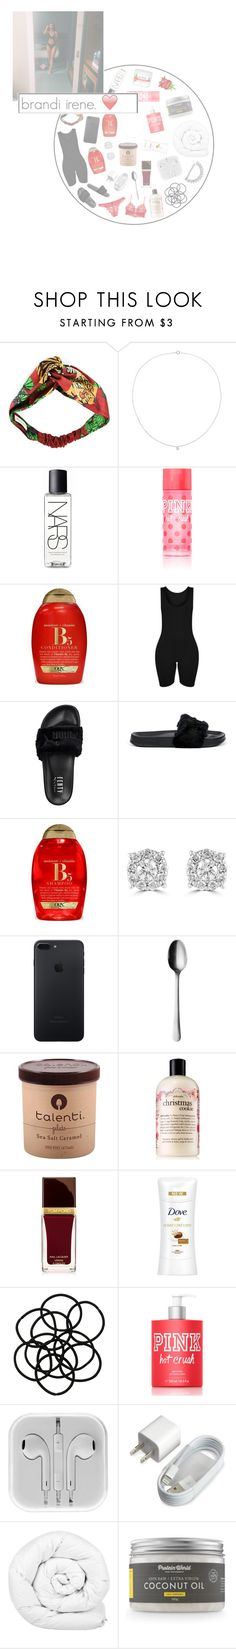 """━ 🌹 tαlk αbout them lies you told me."" by spoiledguwo-p ❤ liked on Polyvore featuring Gucci, Sole Society, NARS Cosmetics, Organix, Puma, Effy Jewelry, Georg Jensen, philosophy, Tom Ford and Dove"